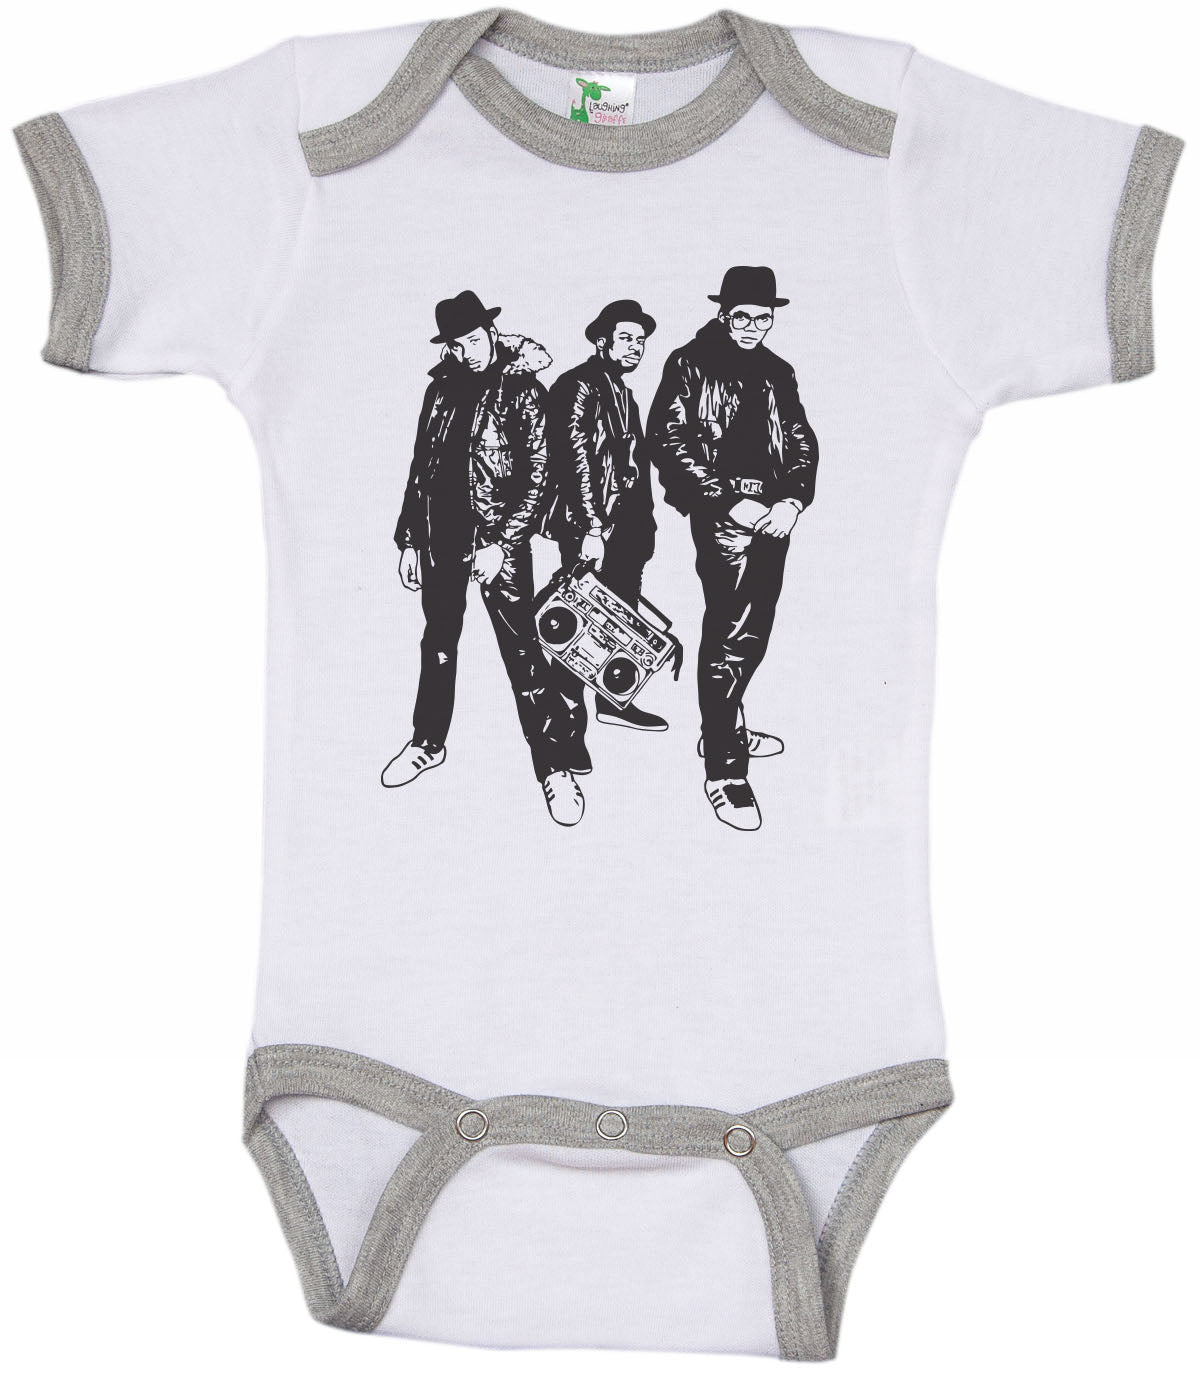 RUN DMC / HIP HOP Inspired Ringer Onesie